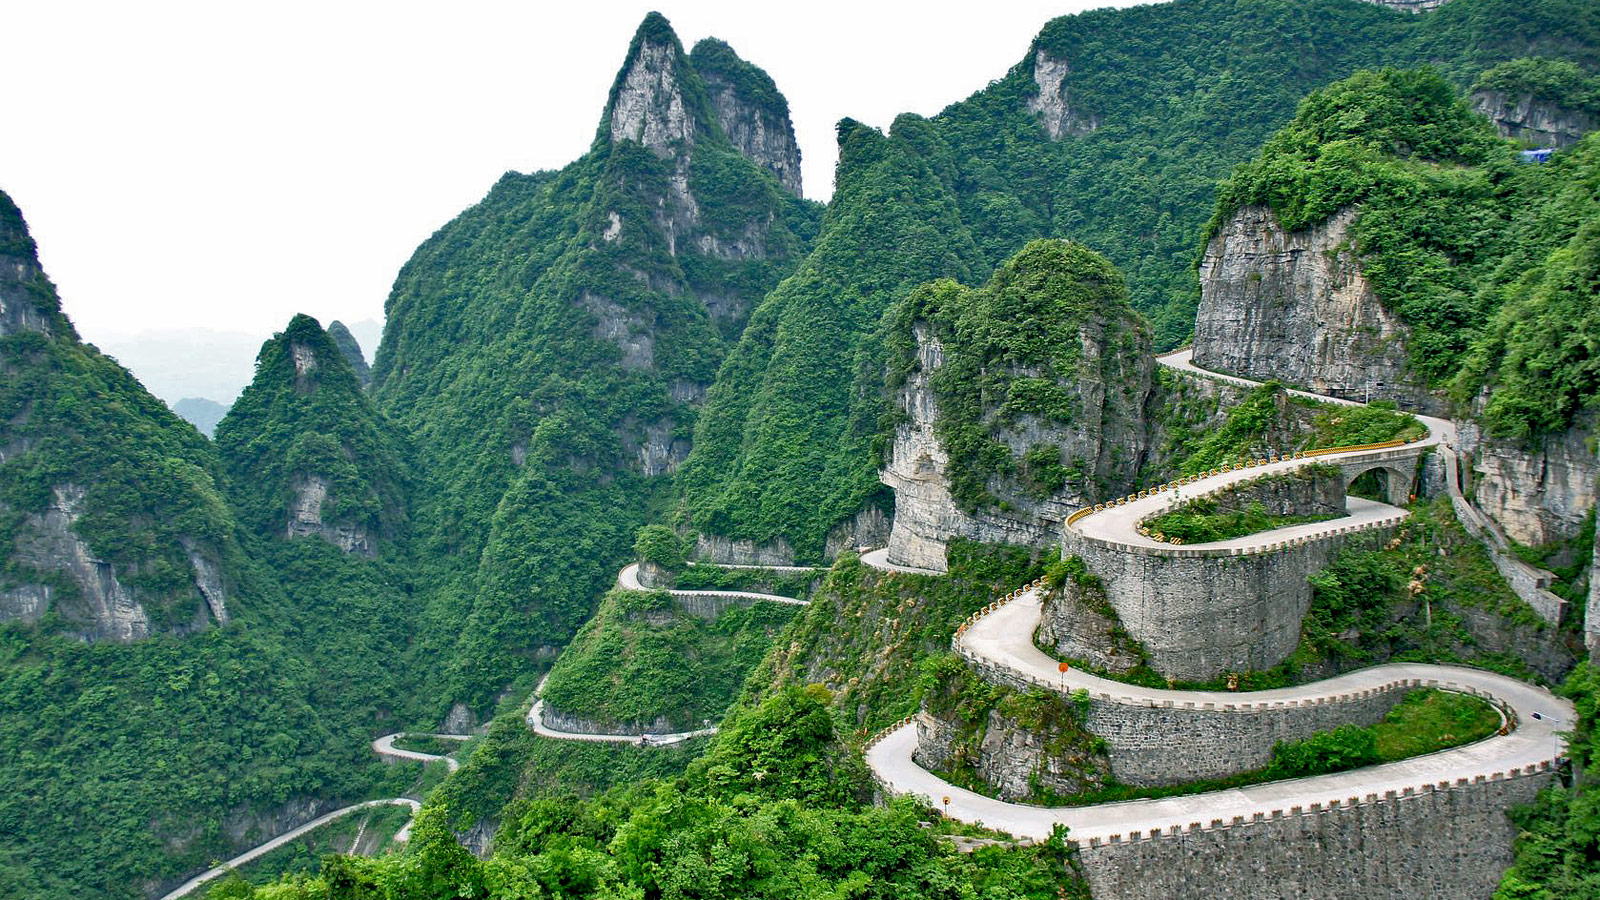 Tianmen-Shan-Big-Gate-Road-123rf-12460143_ml-salil-edit